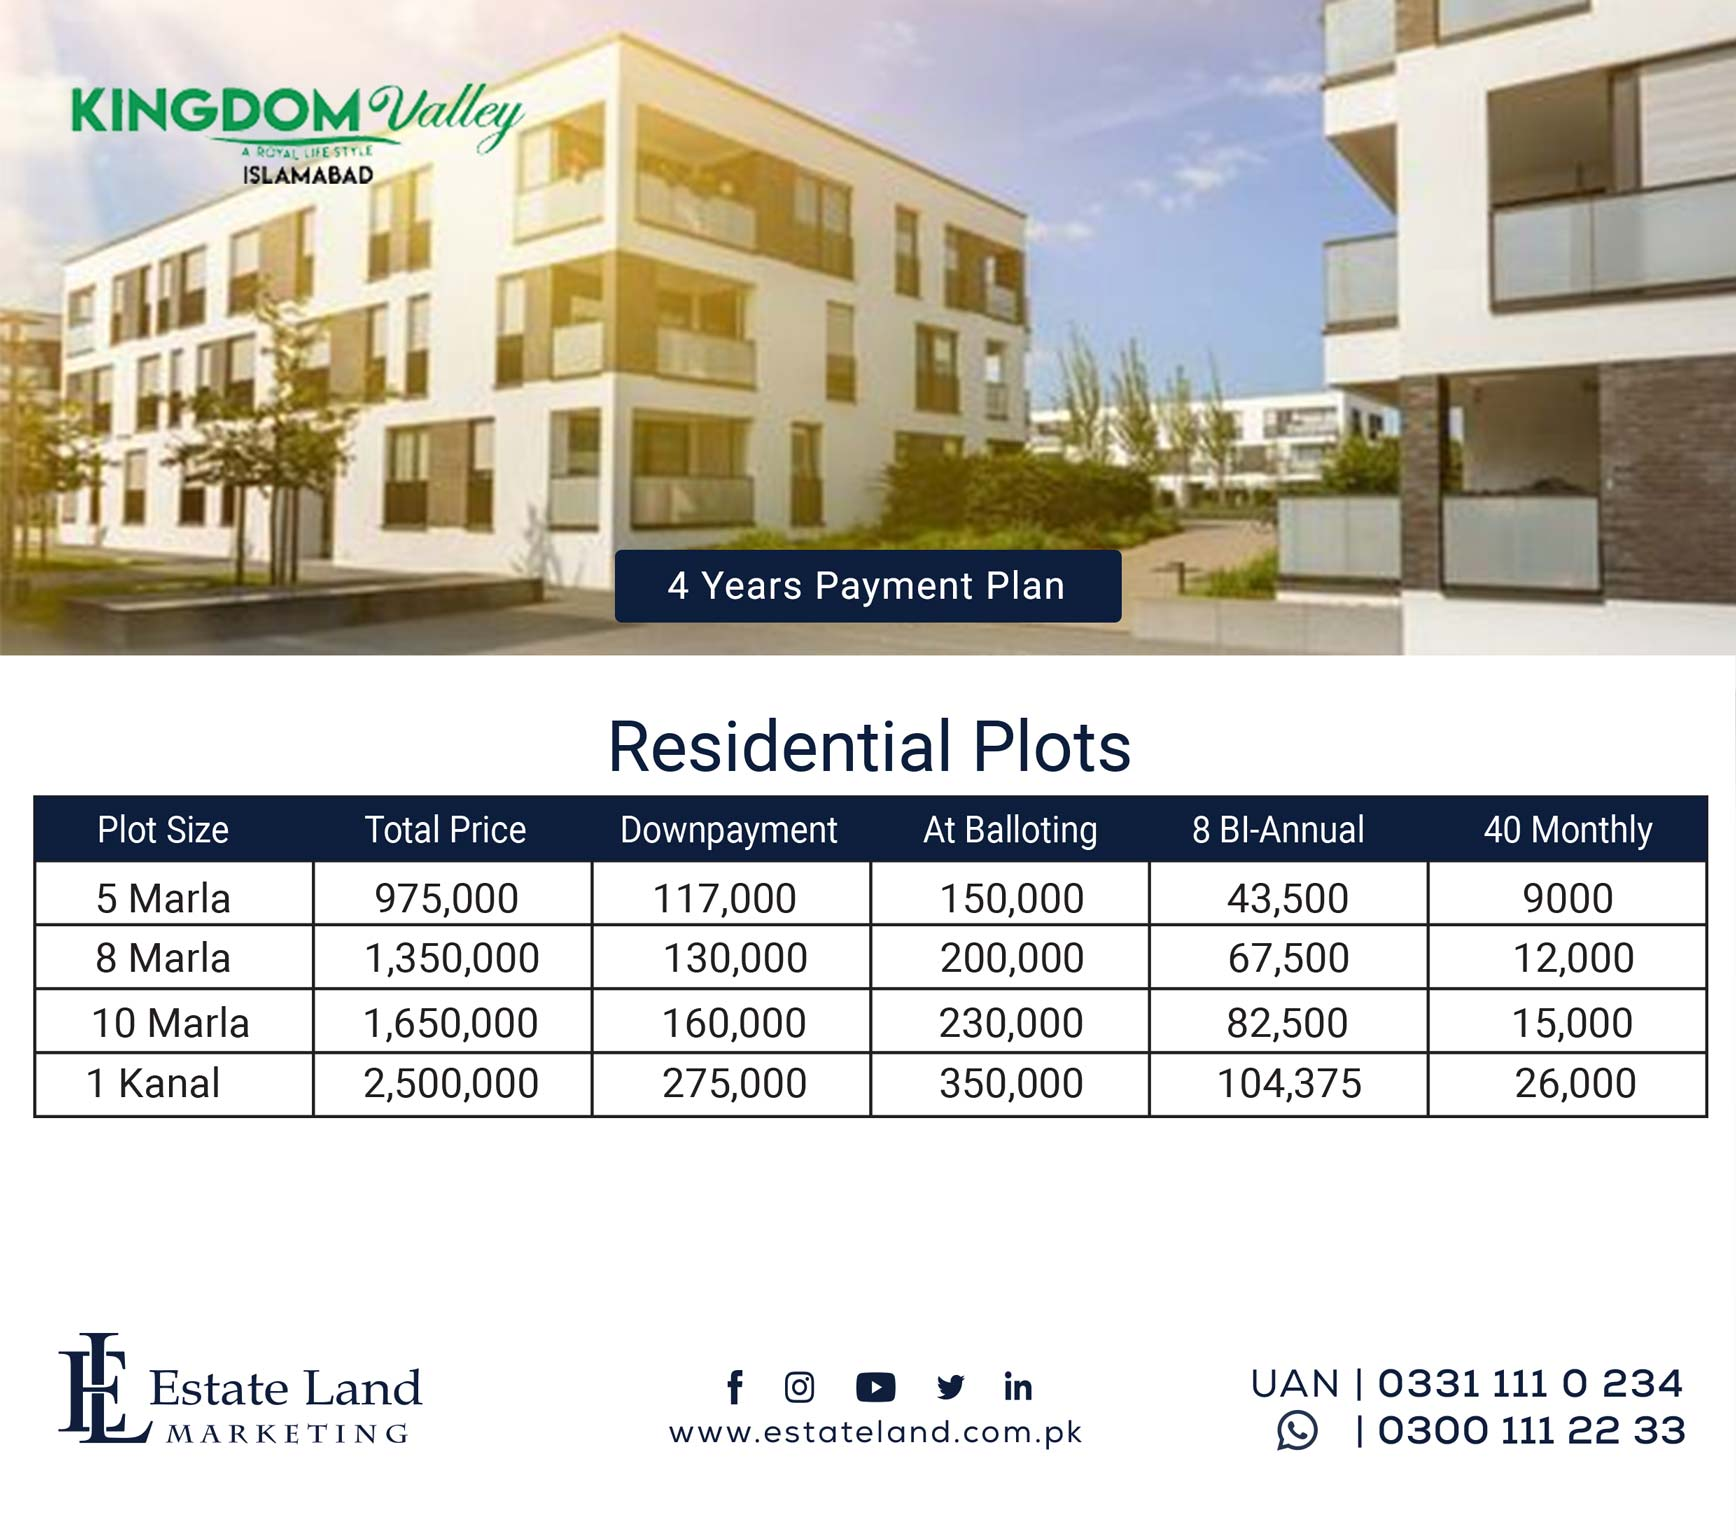 Invest in Kingdom Valley residential plots payment plan